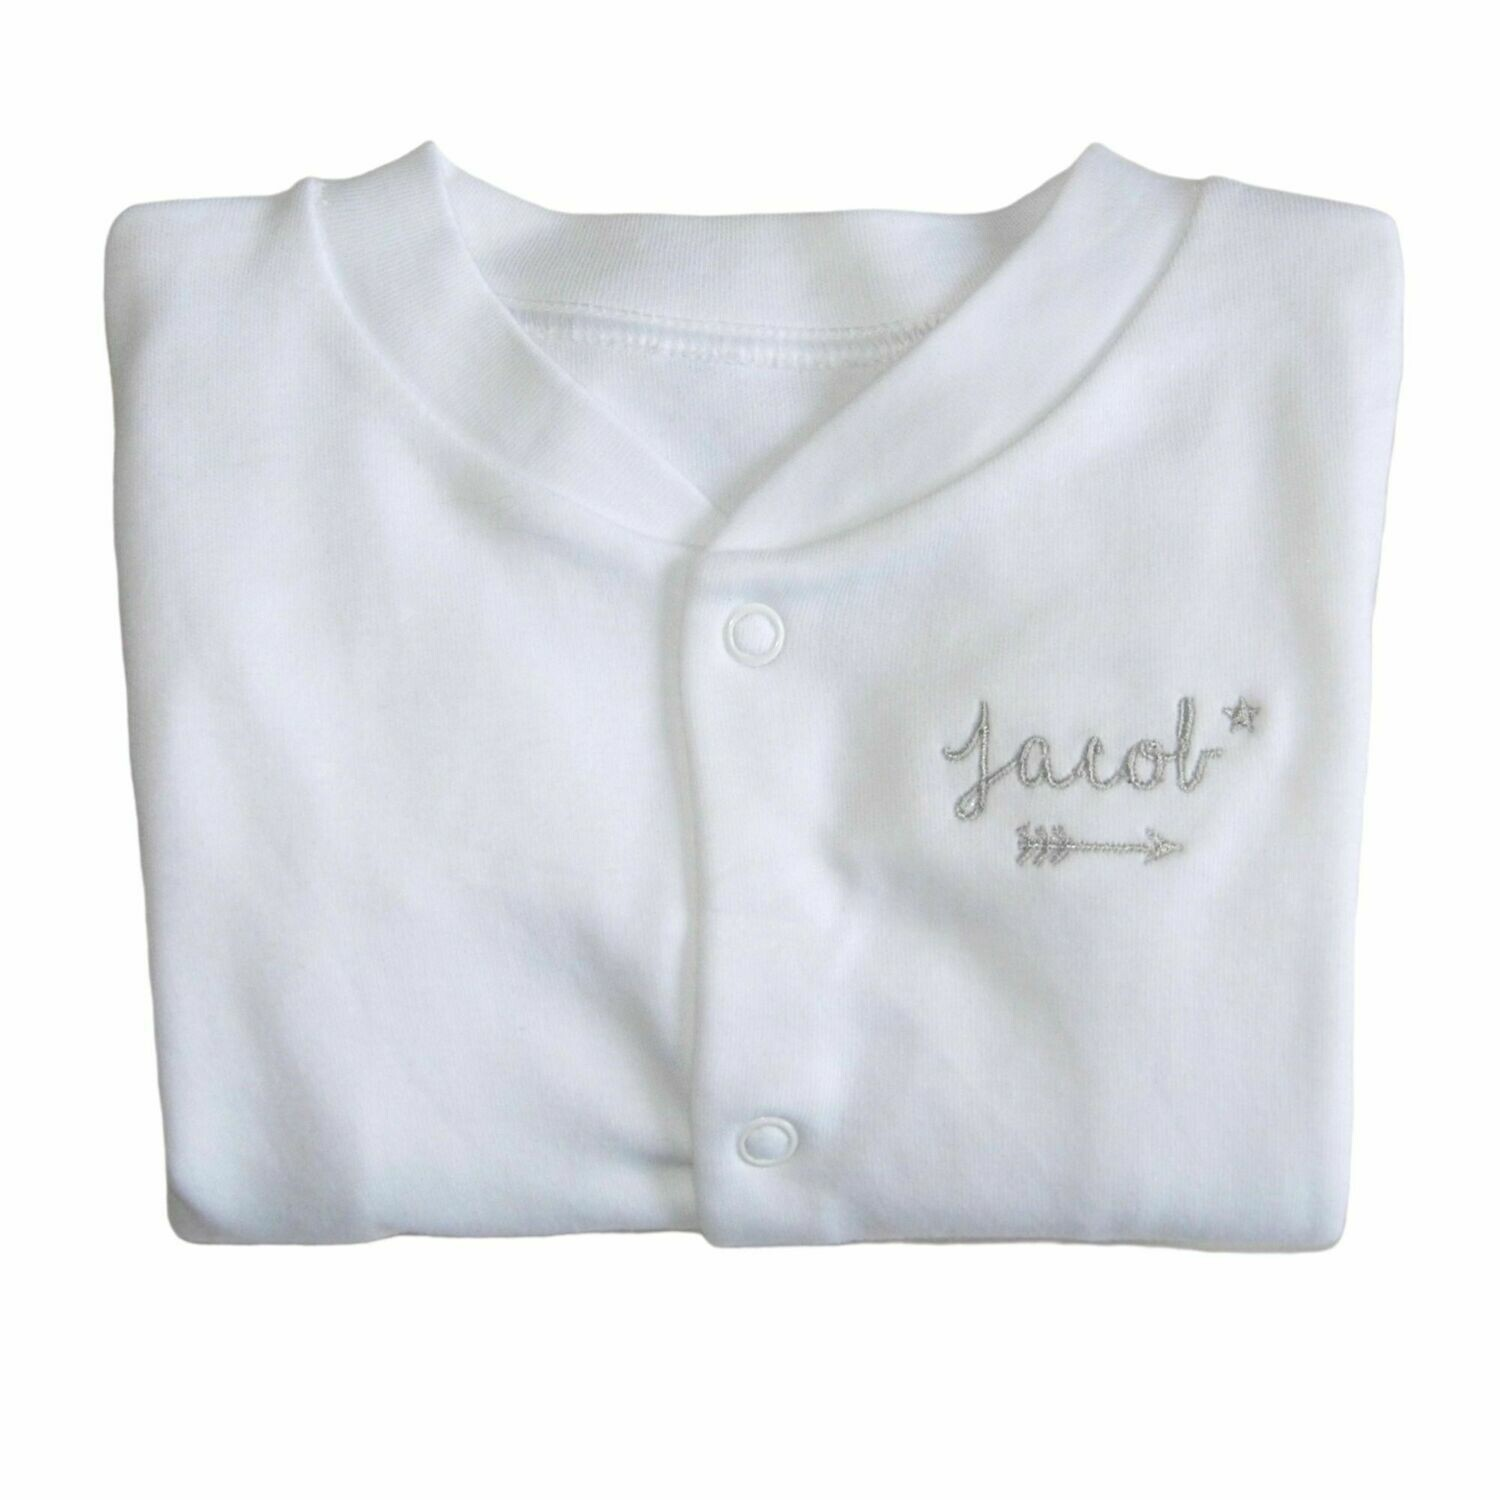 Personalised Baby Sleepsuit with Embroidered Name & Arrow